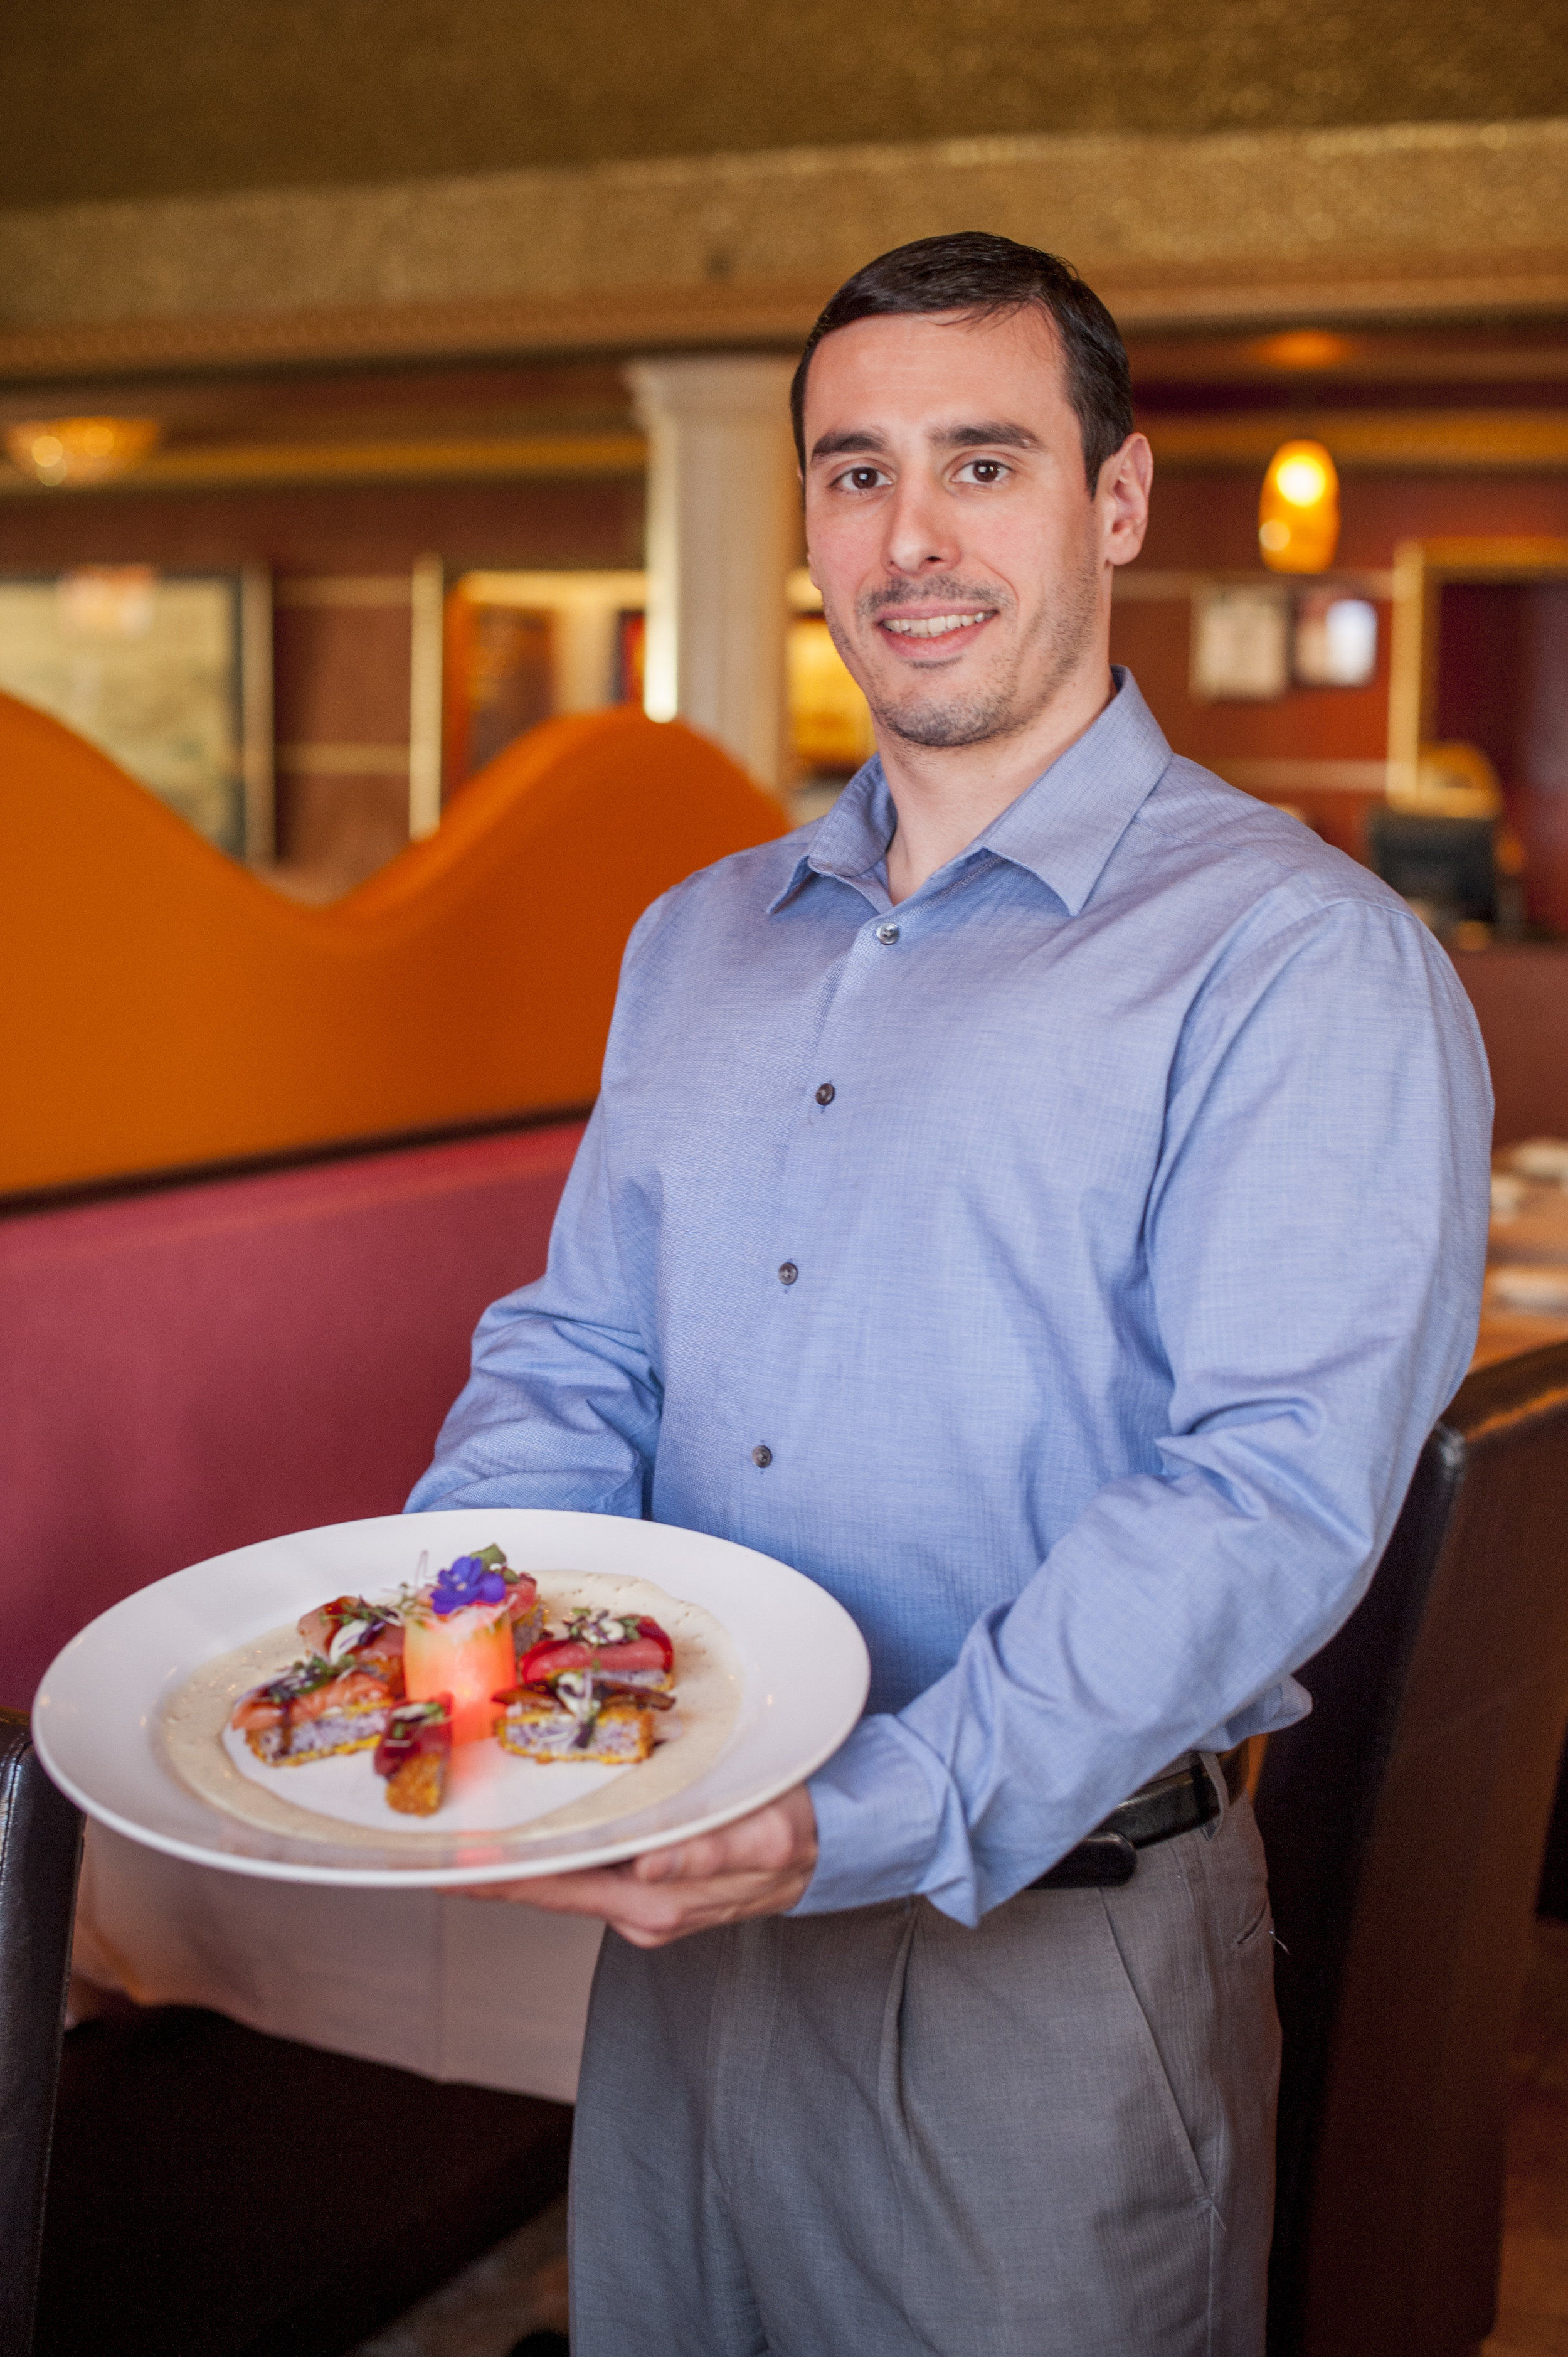 General Manager Colin McGlone says he strives to maintain personal relationships with all of his guests at Ting, with most of the diners returning time and time again.